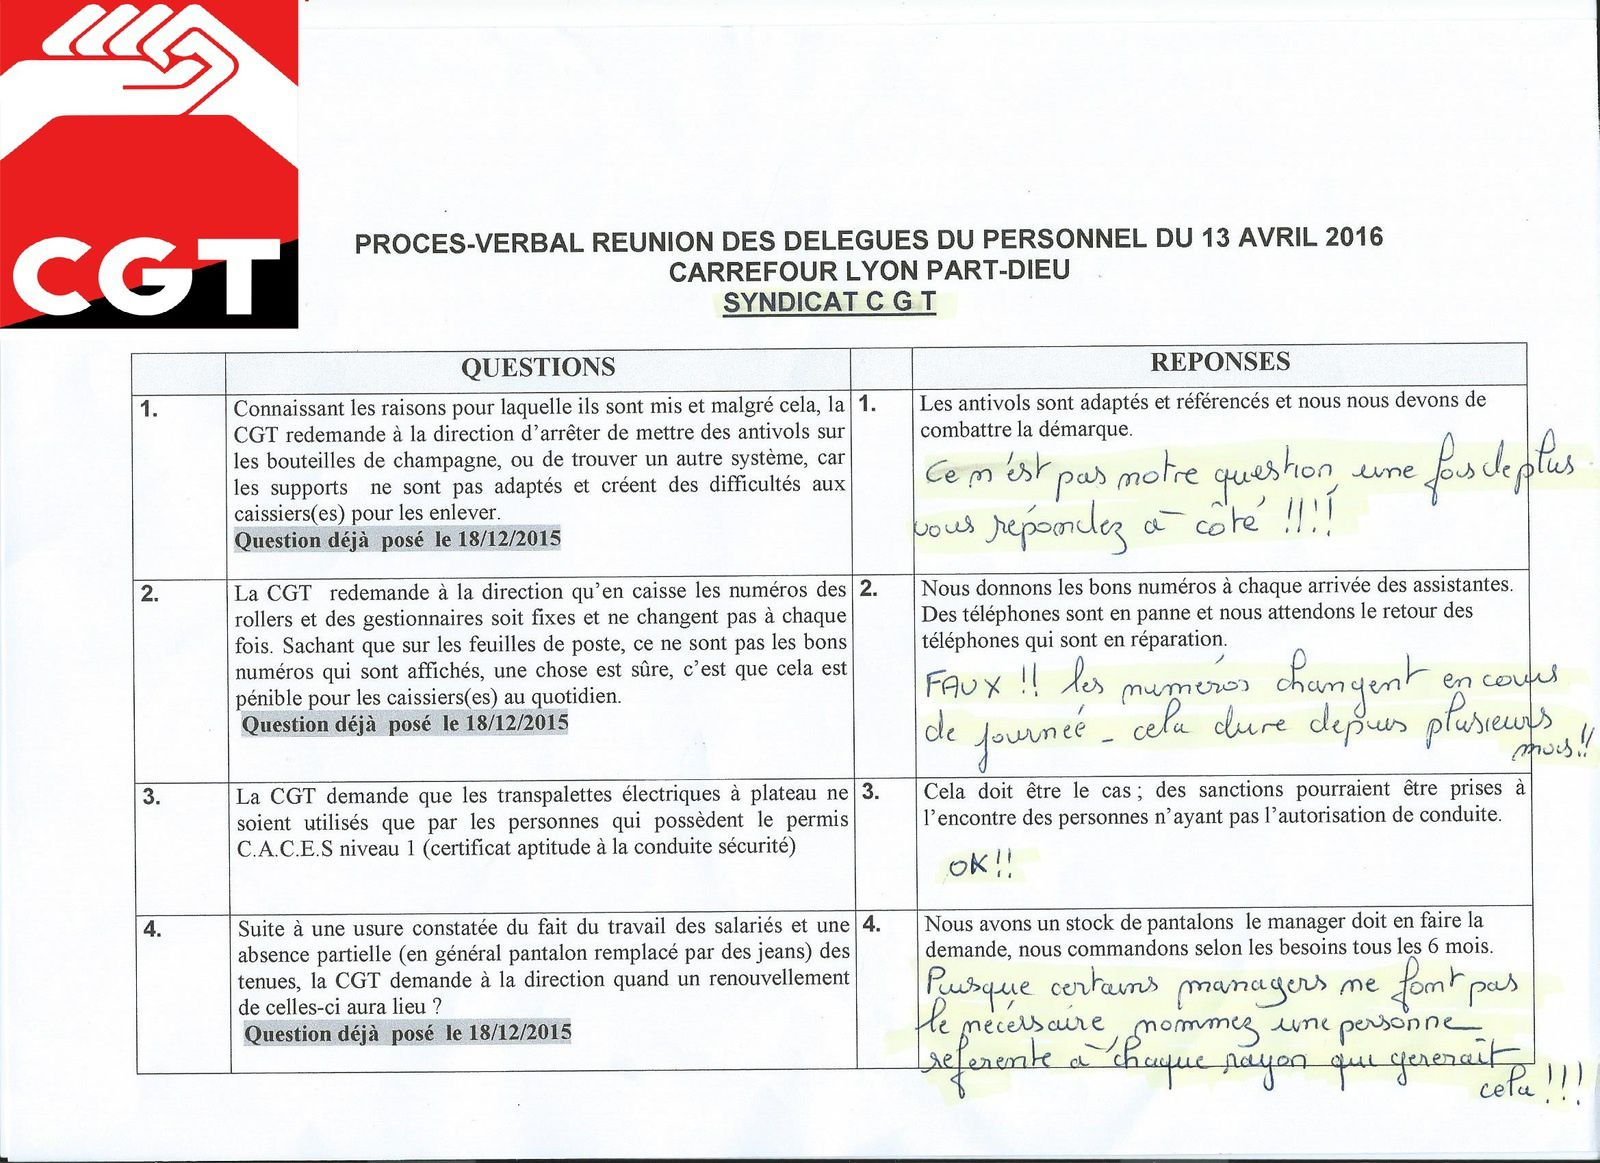 Questions DP 13 avril 2016